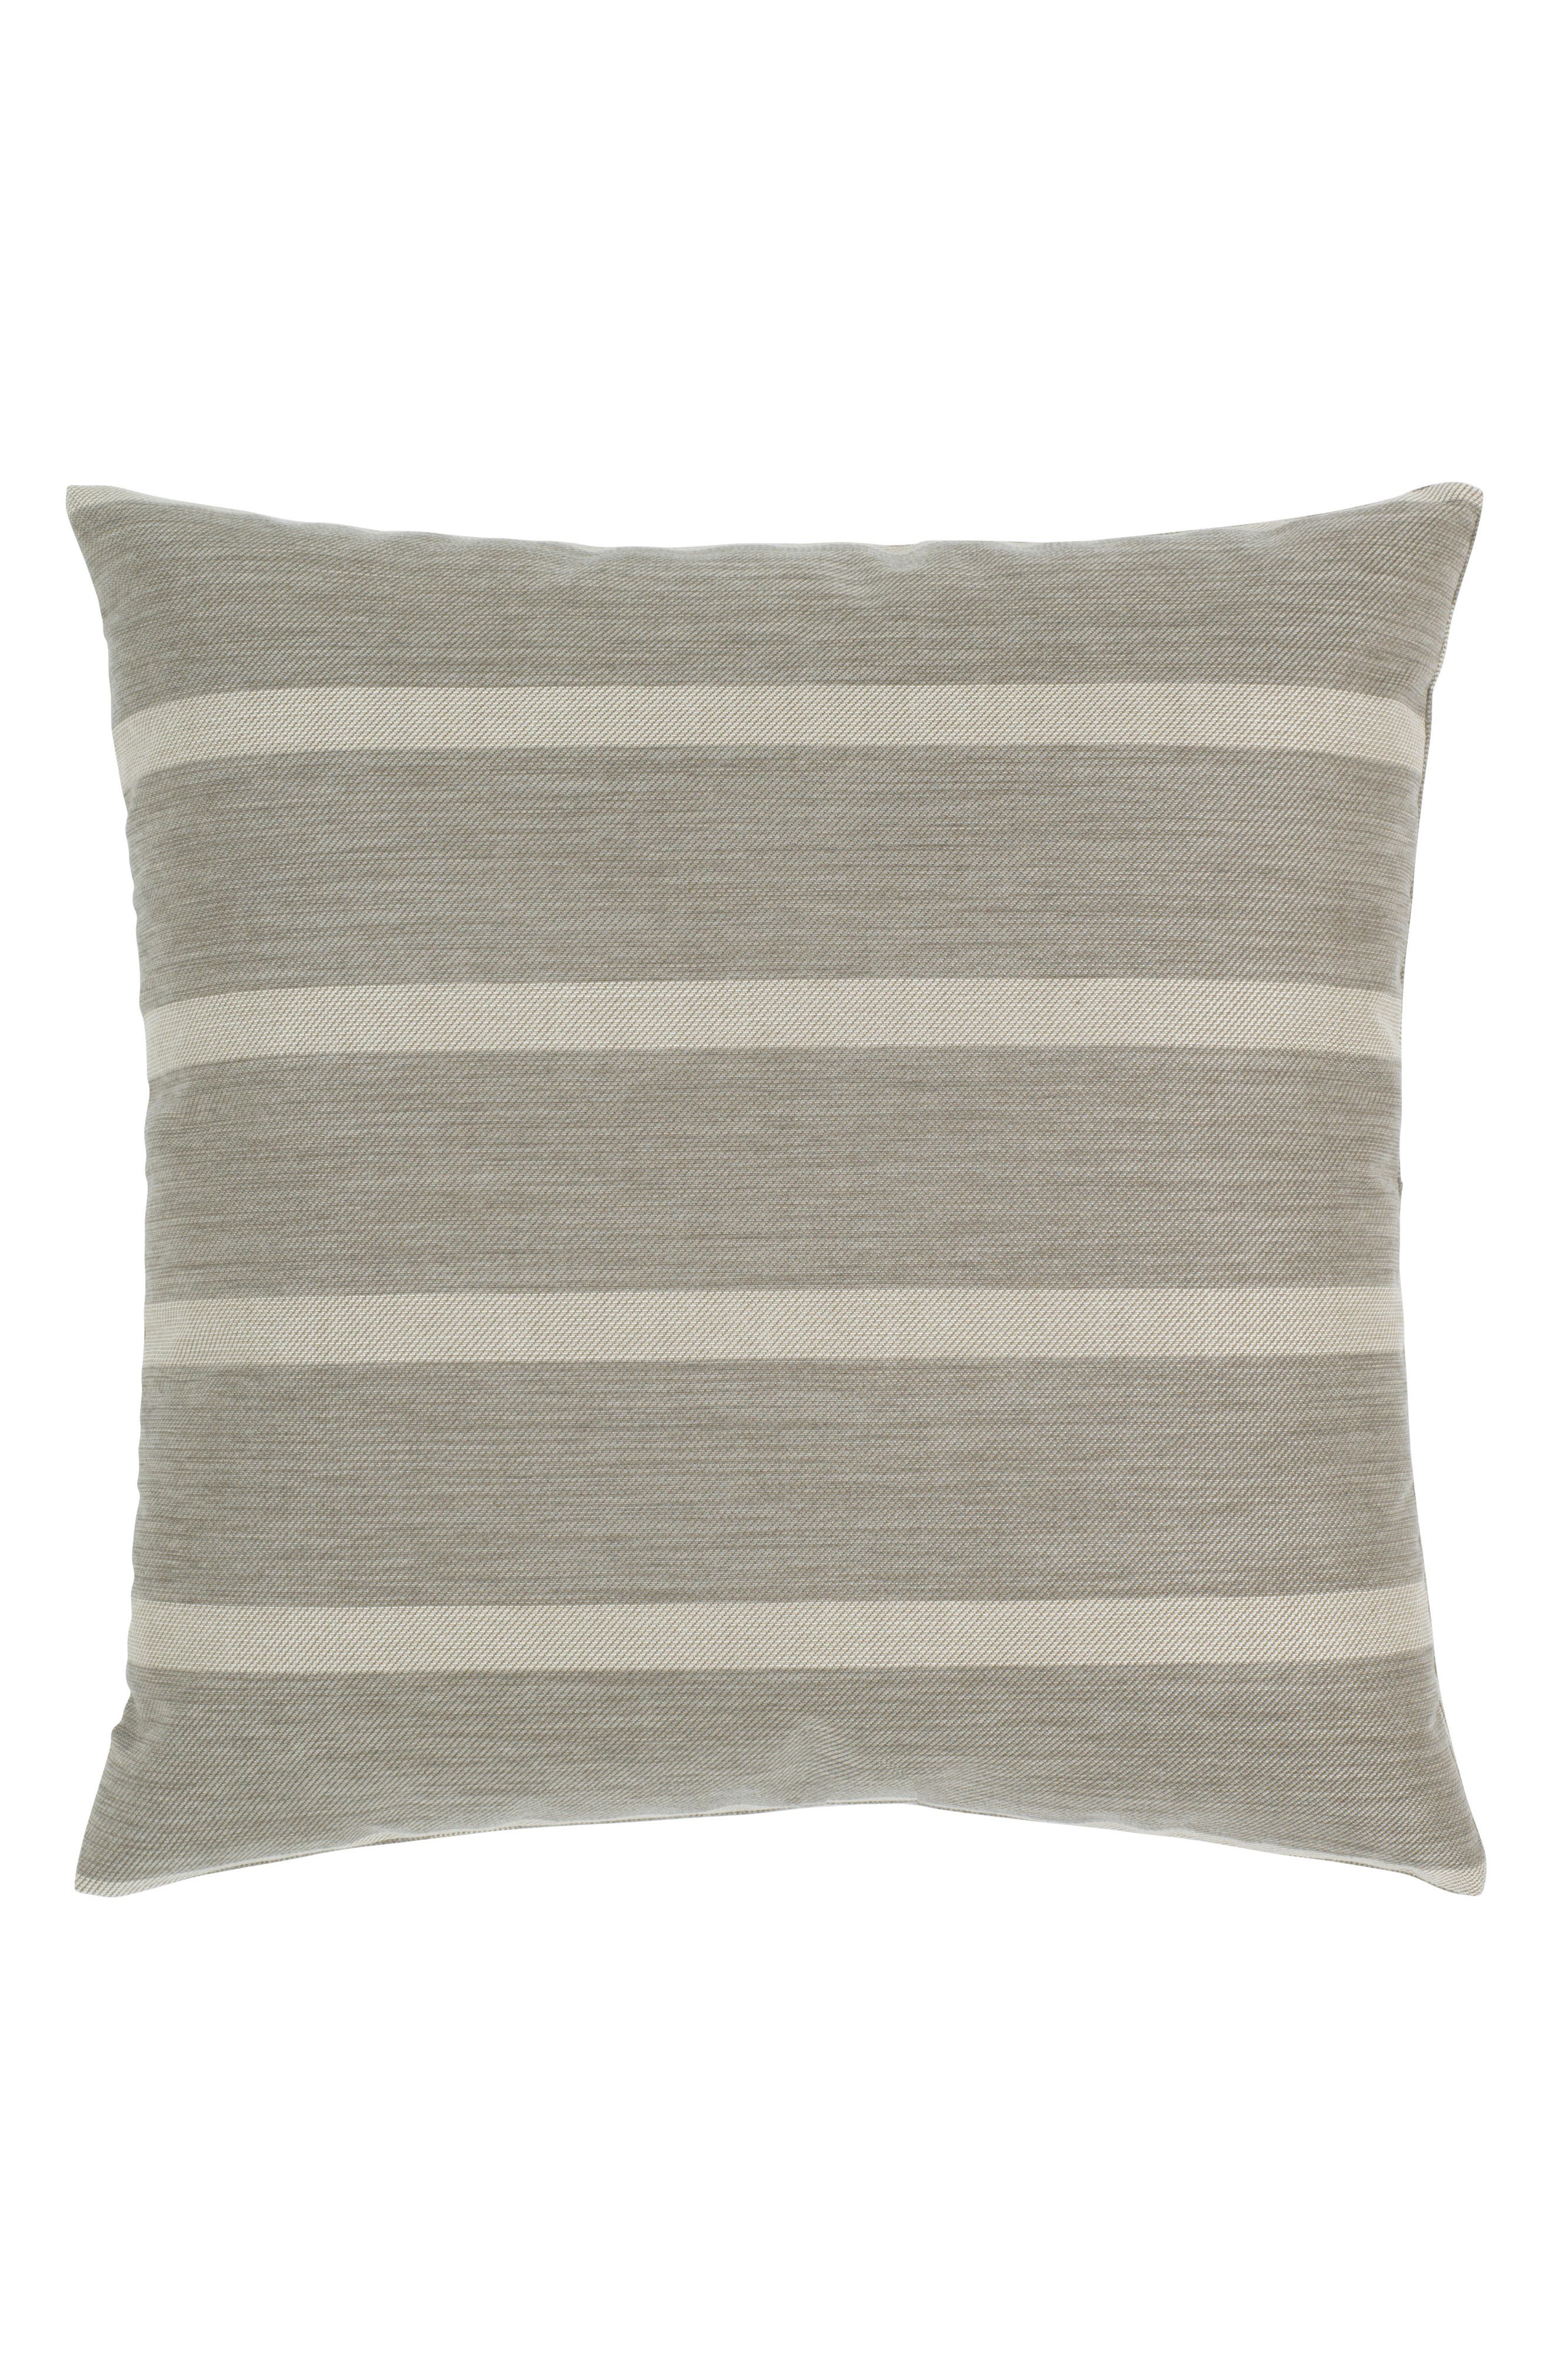 Sparkle Stripe Indoor/Outdoor Accent Pillow,                             Alternate thumbnail 3, color,                             Grey